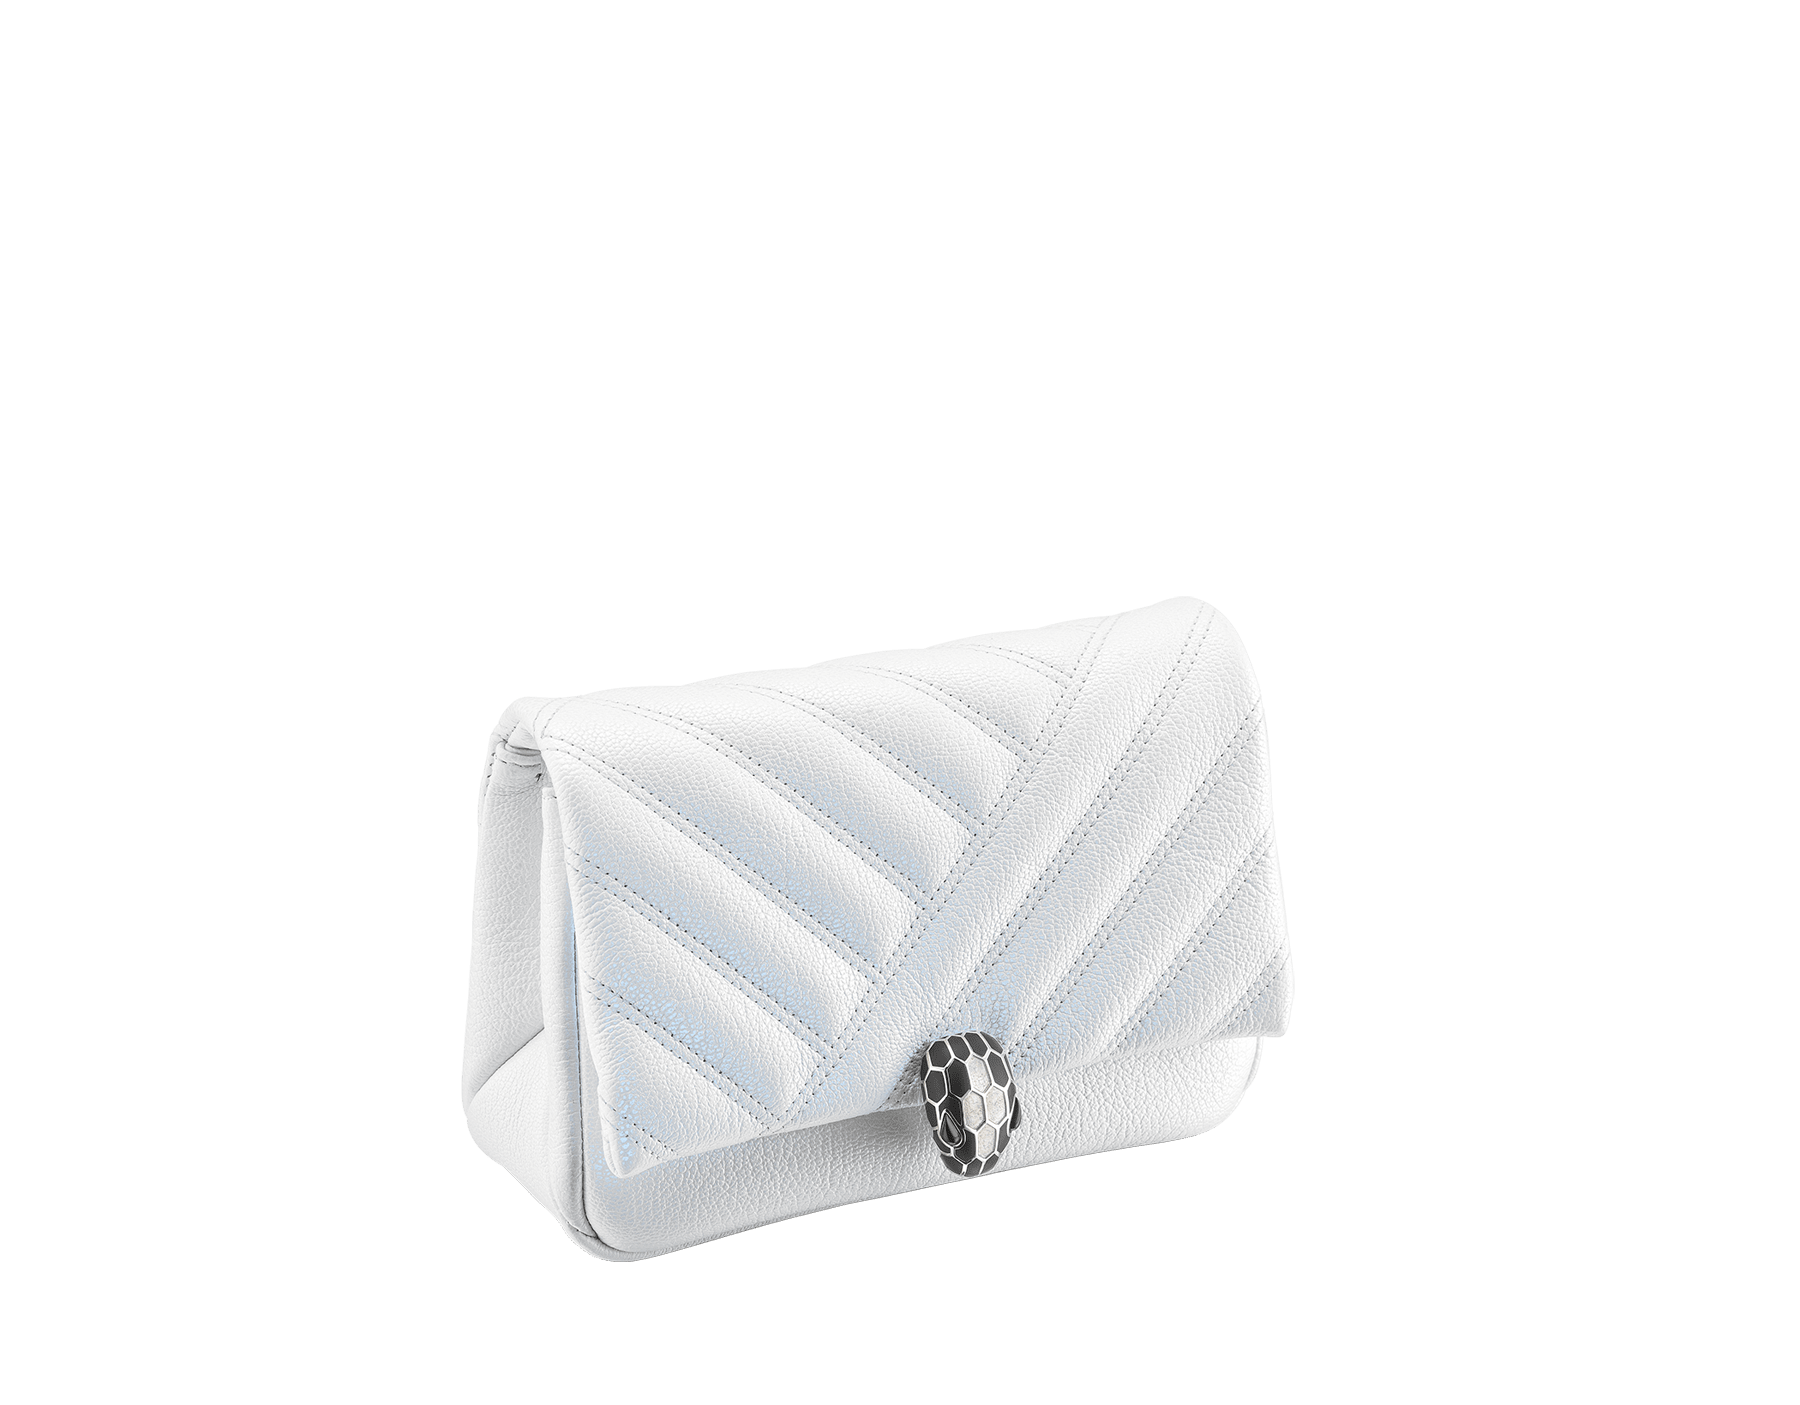 """Serpenti Cabochon"" micro bag in soft matelassé white agate goatskin with a pearled and iridescent effect, with a graphic motif. Brass palladium plated tempting snakehead closure in matte black and shiny white agate enamel and black onyx eyes. 289848 image 2"